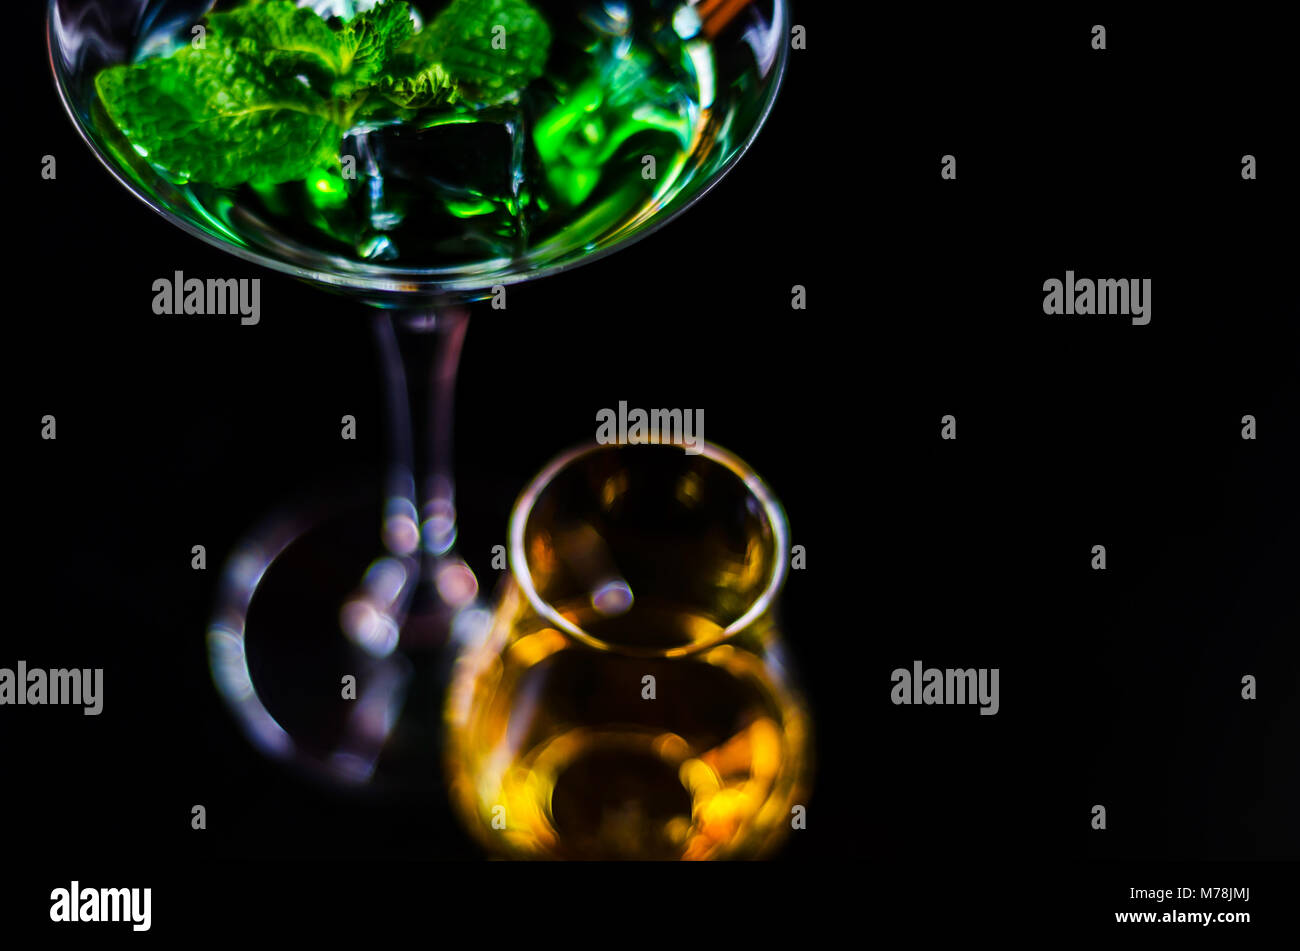 single malt whiskey in a glass and green mint liqueur, refreshing set of drinks, taste sensations - Stock Image